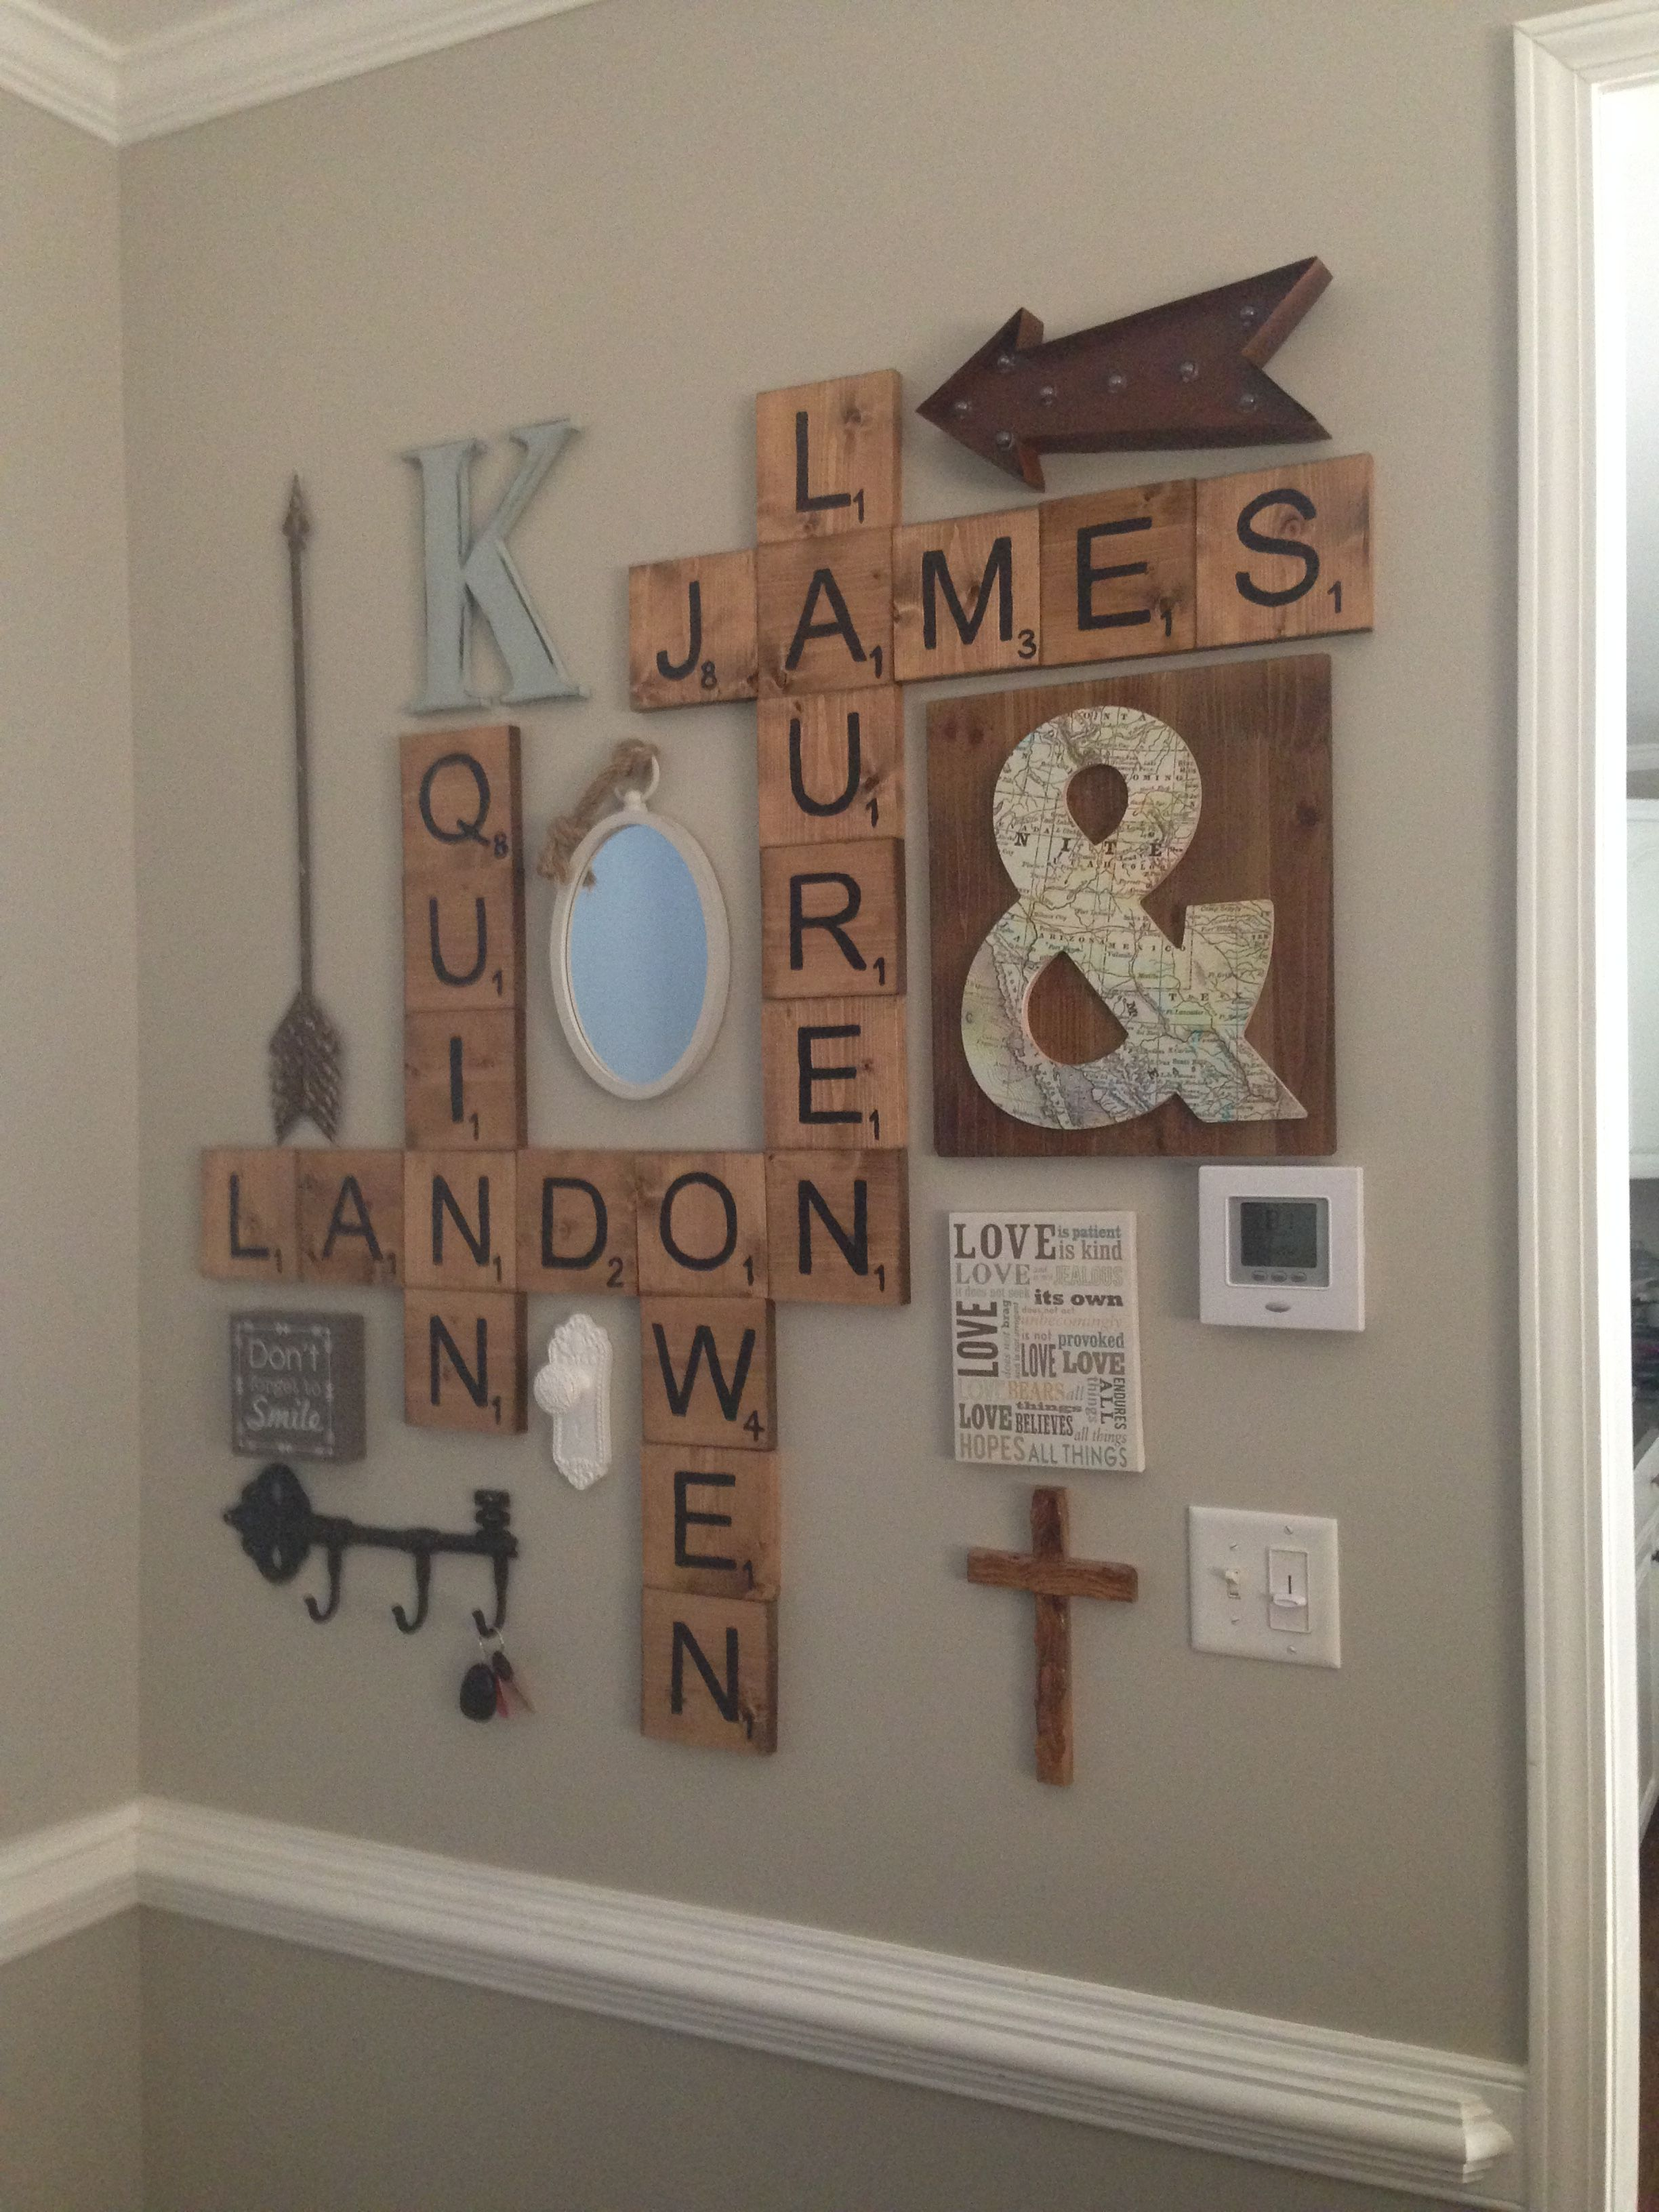 Scrabble Letter Wall Decor Scrabble Letters Wall Decor Diy Pinterest Letter Wall Decor